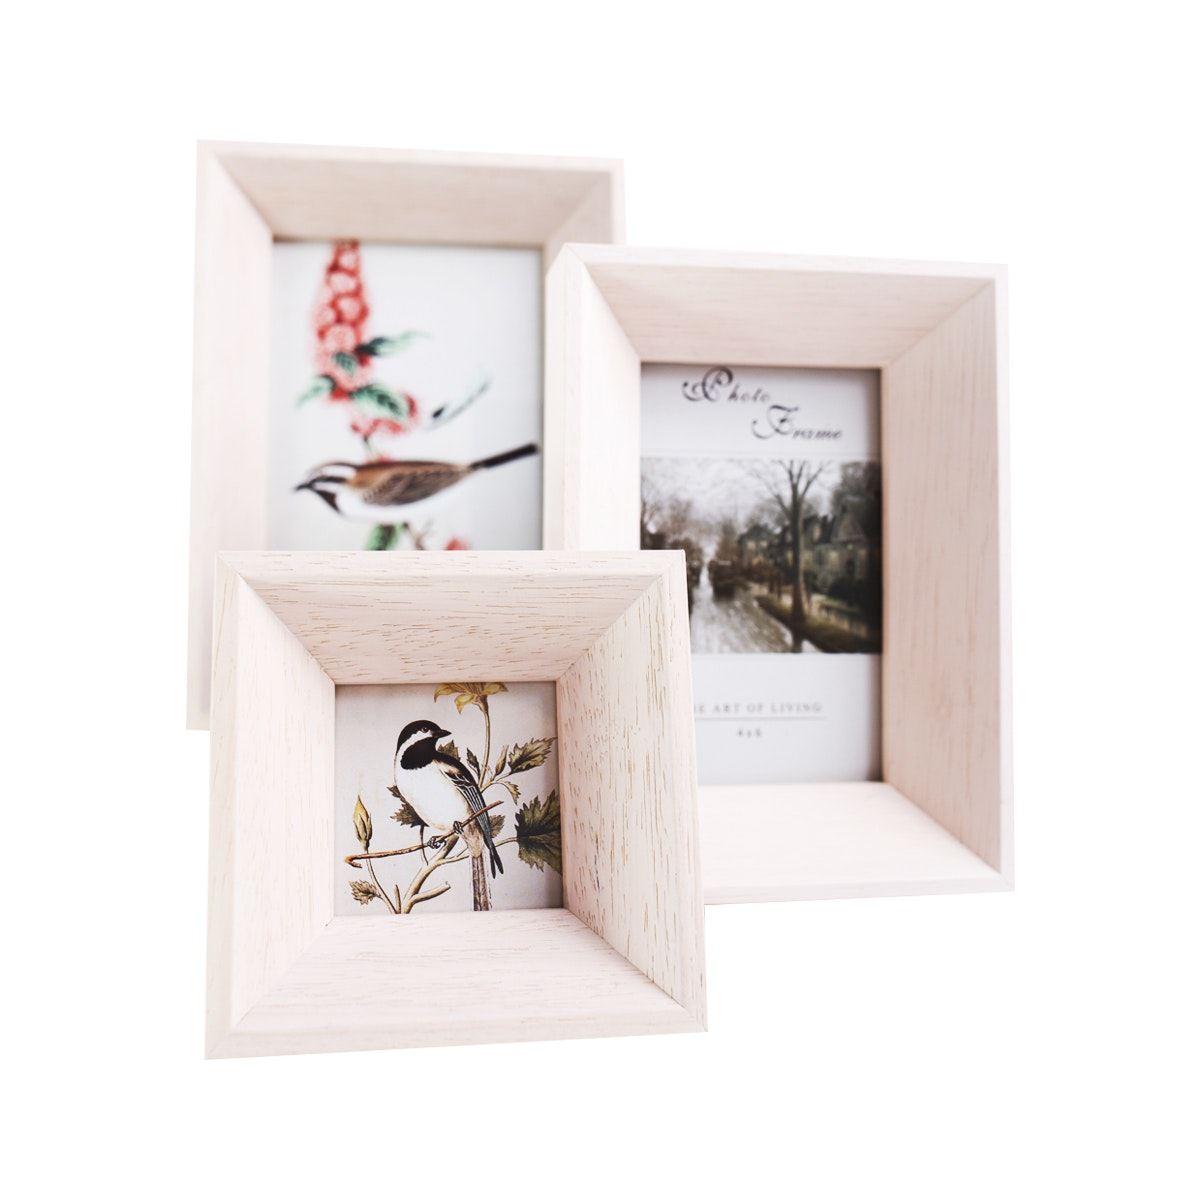 raphael living Frame C 1 set 3 pcs